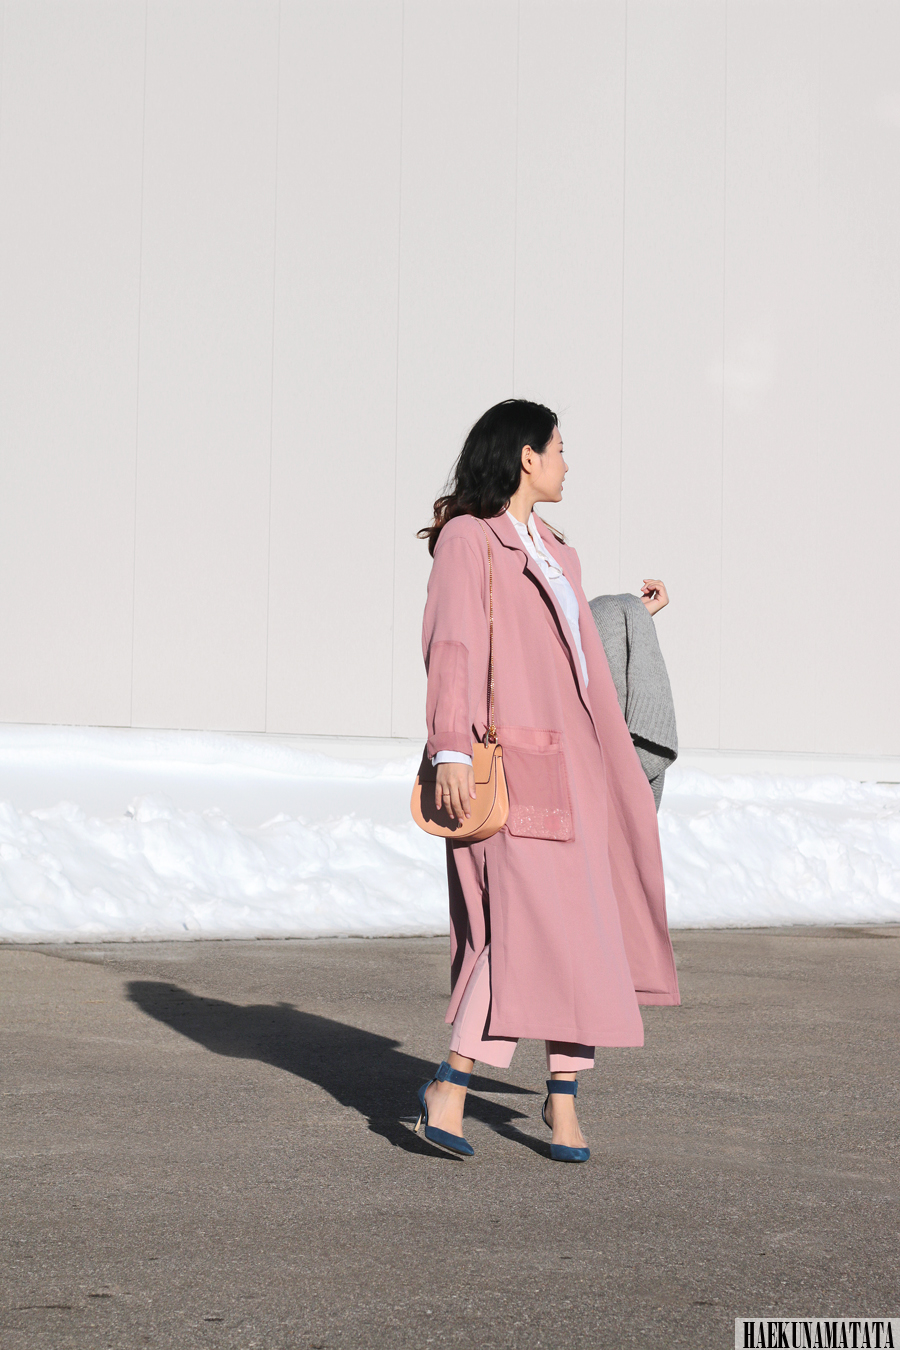 Topshop Duster Coat, Utility Peg Trousers, Ankle Strap Sandal, Long Coat Blogger Style